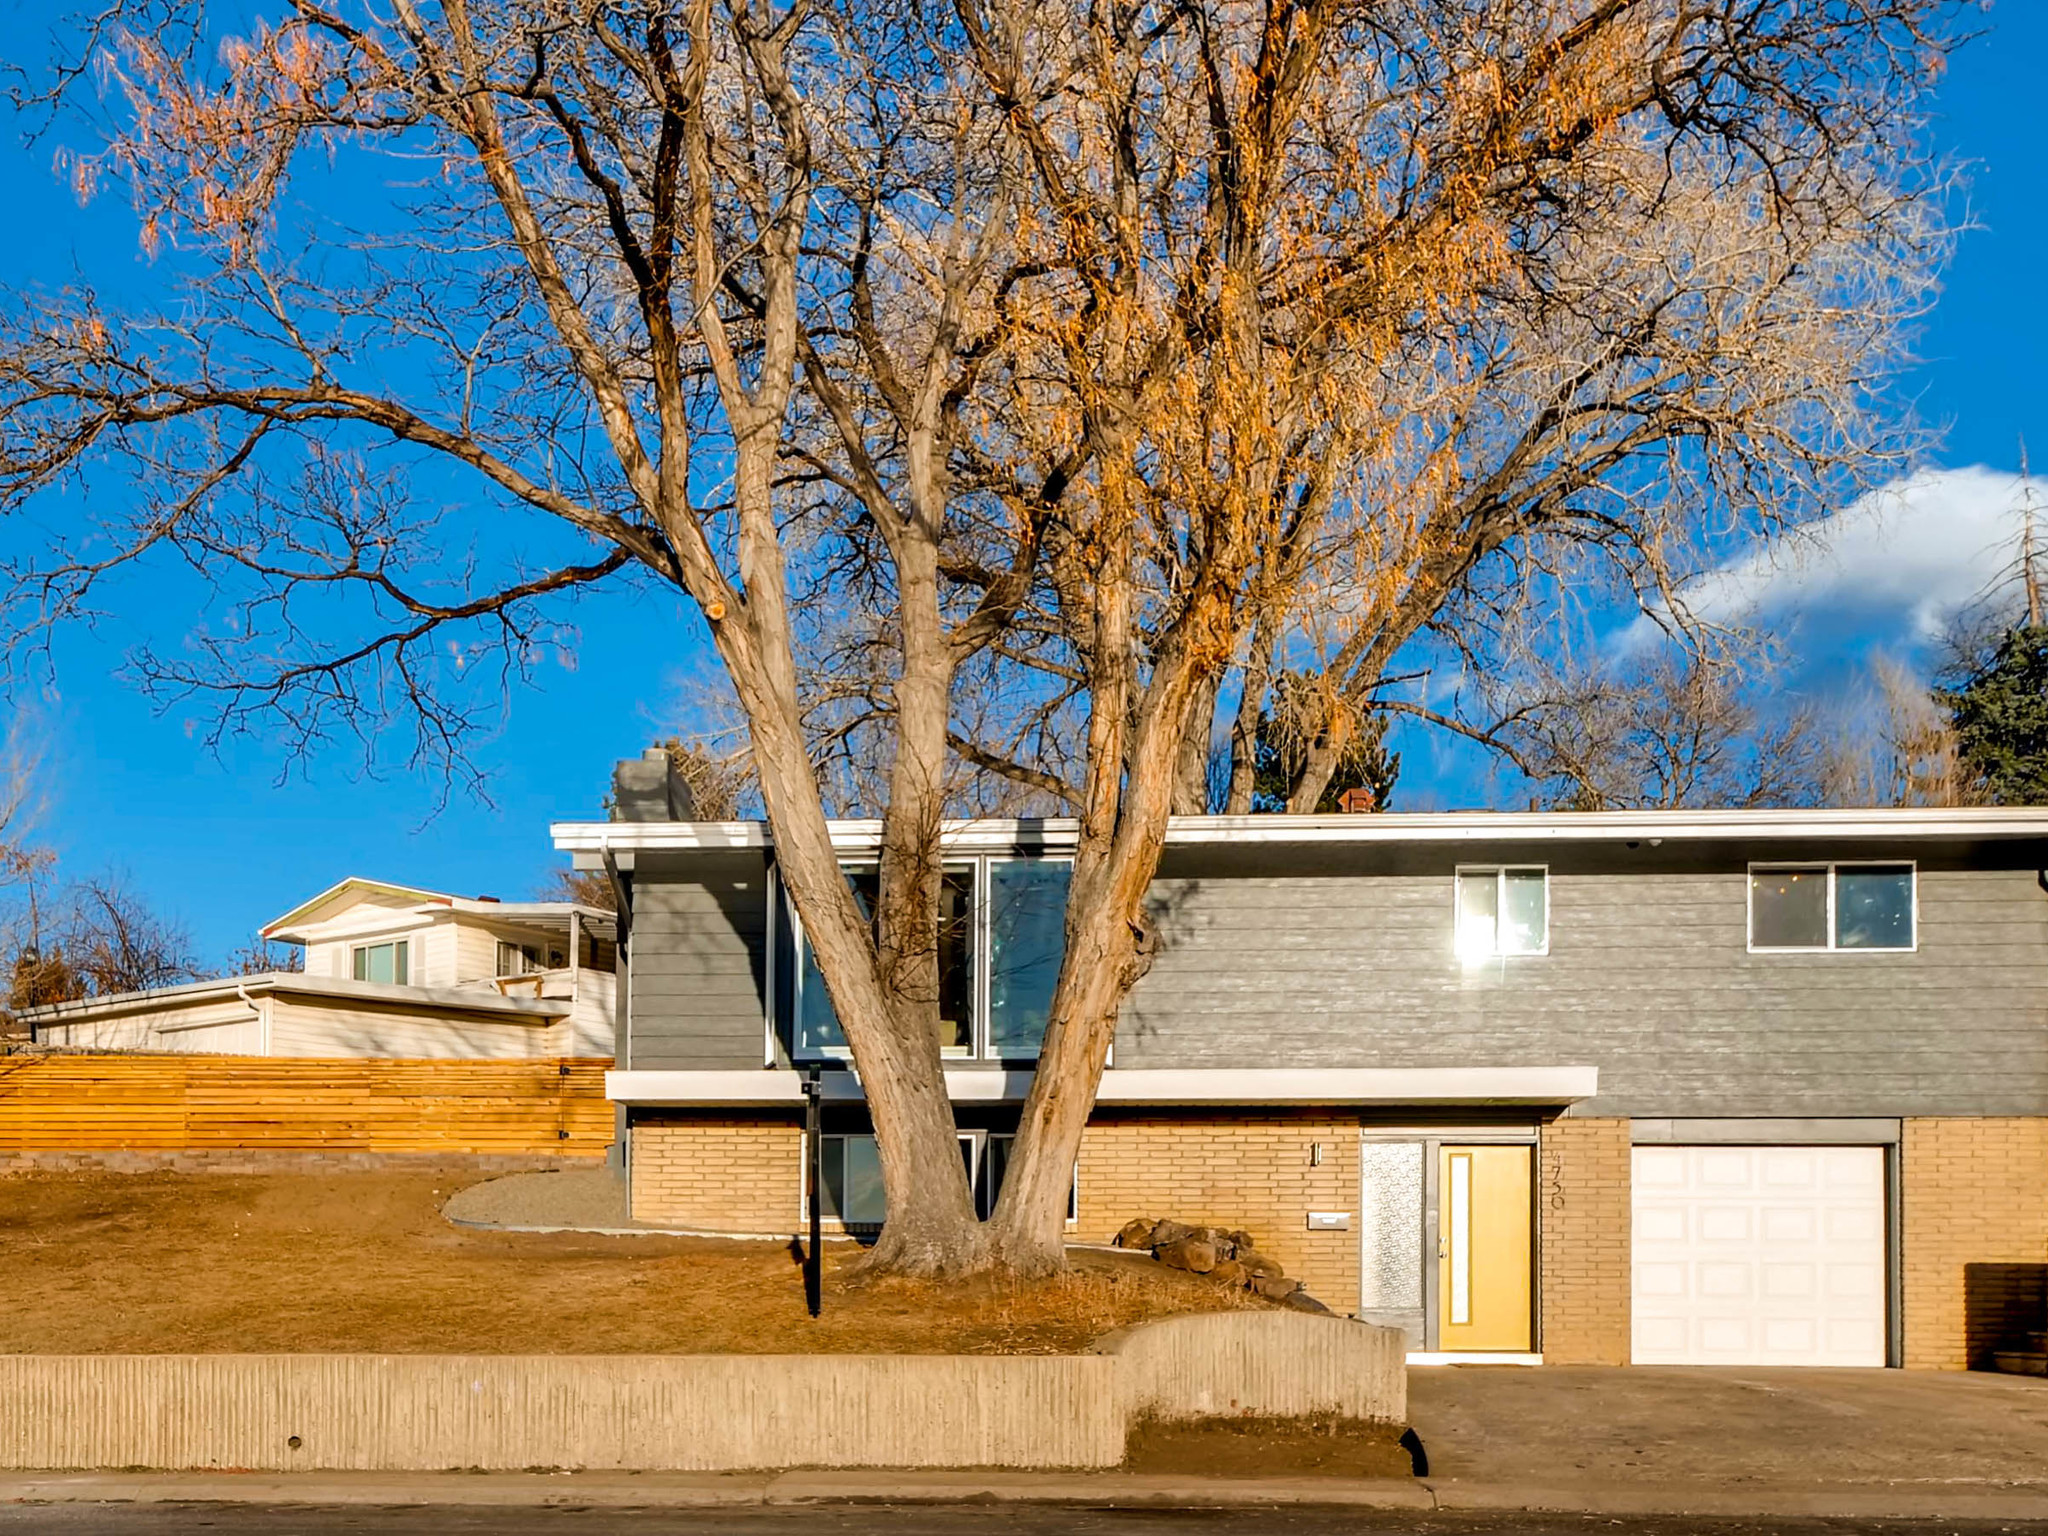 4750 S Mariposa Dr Englewood-MLS_Size-001-3-Exterior Front-2048x1536-72dpi.jpg